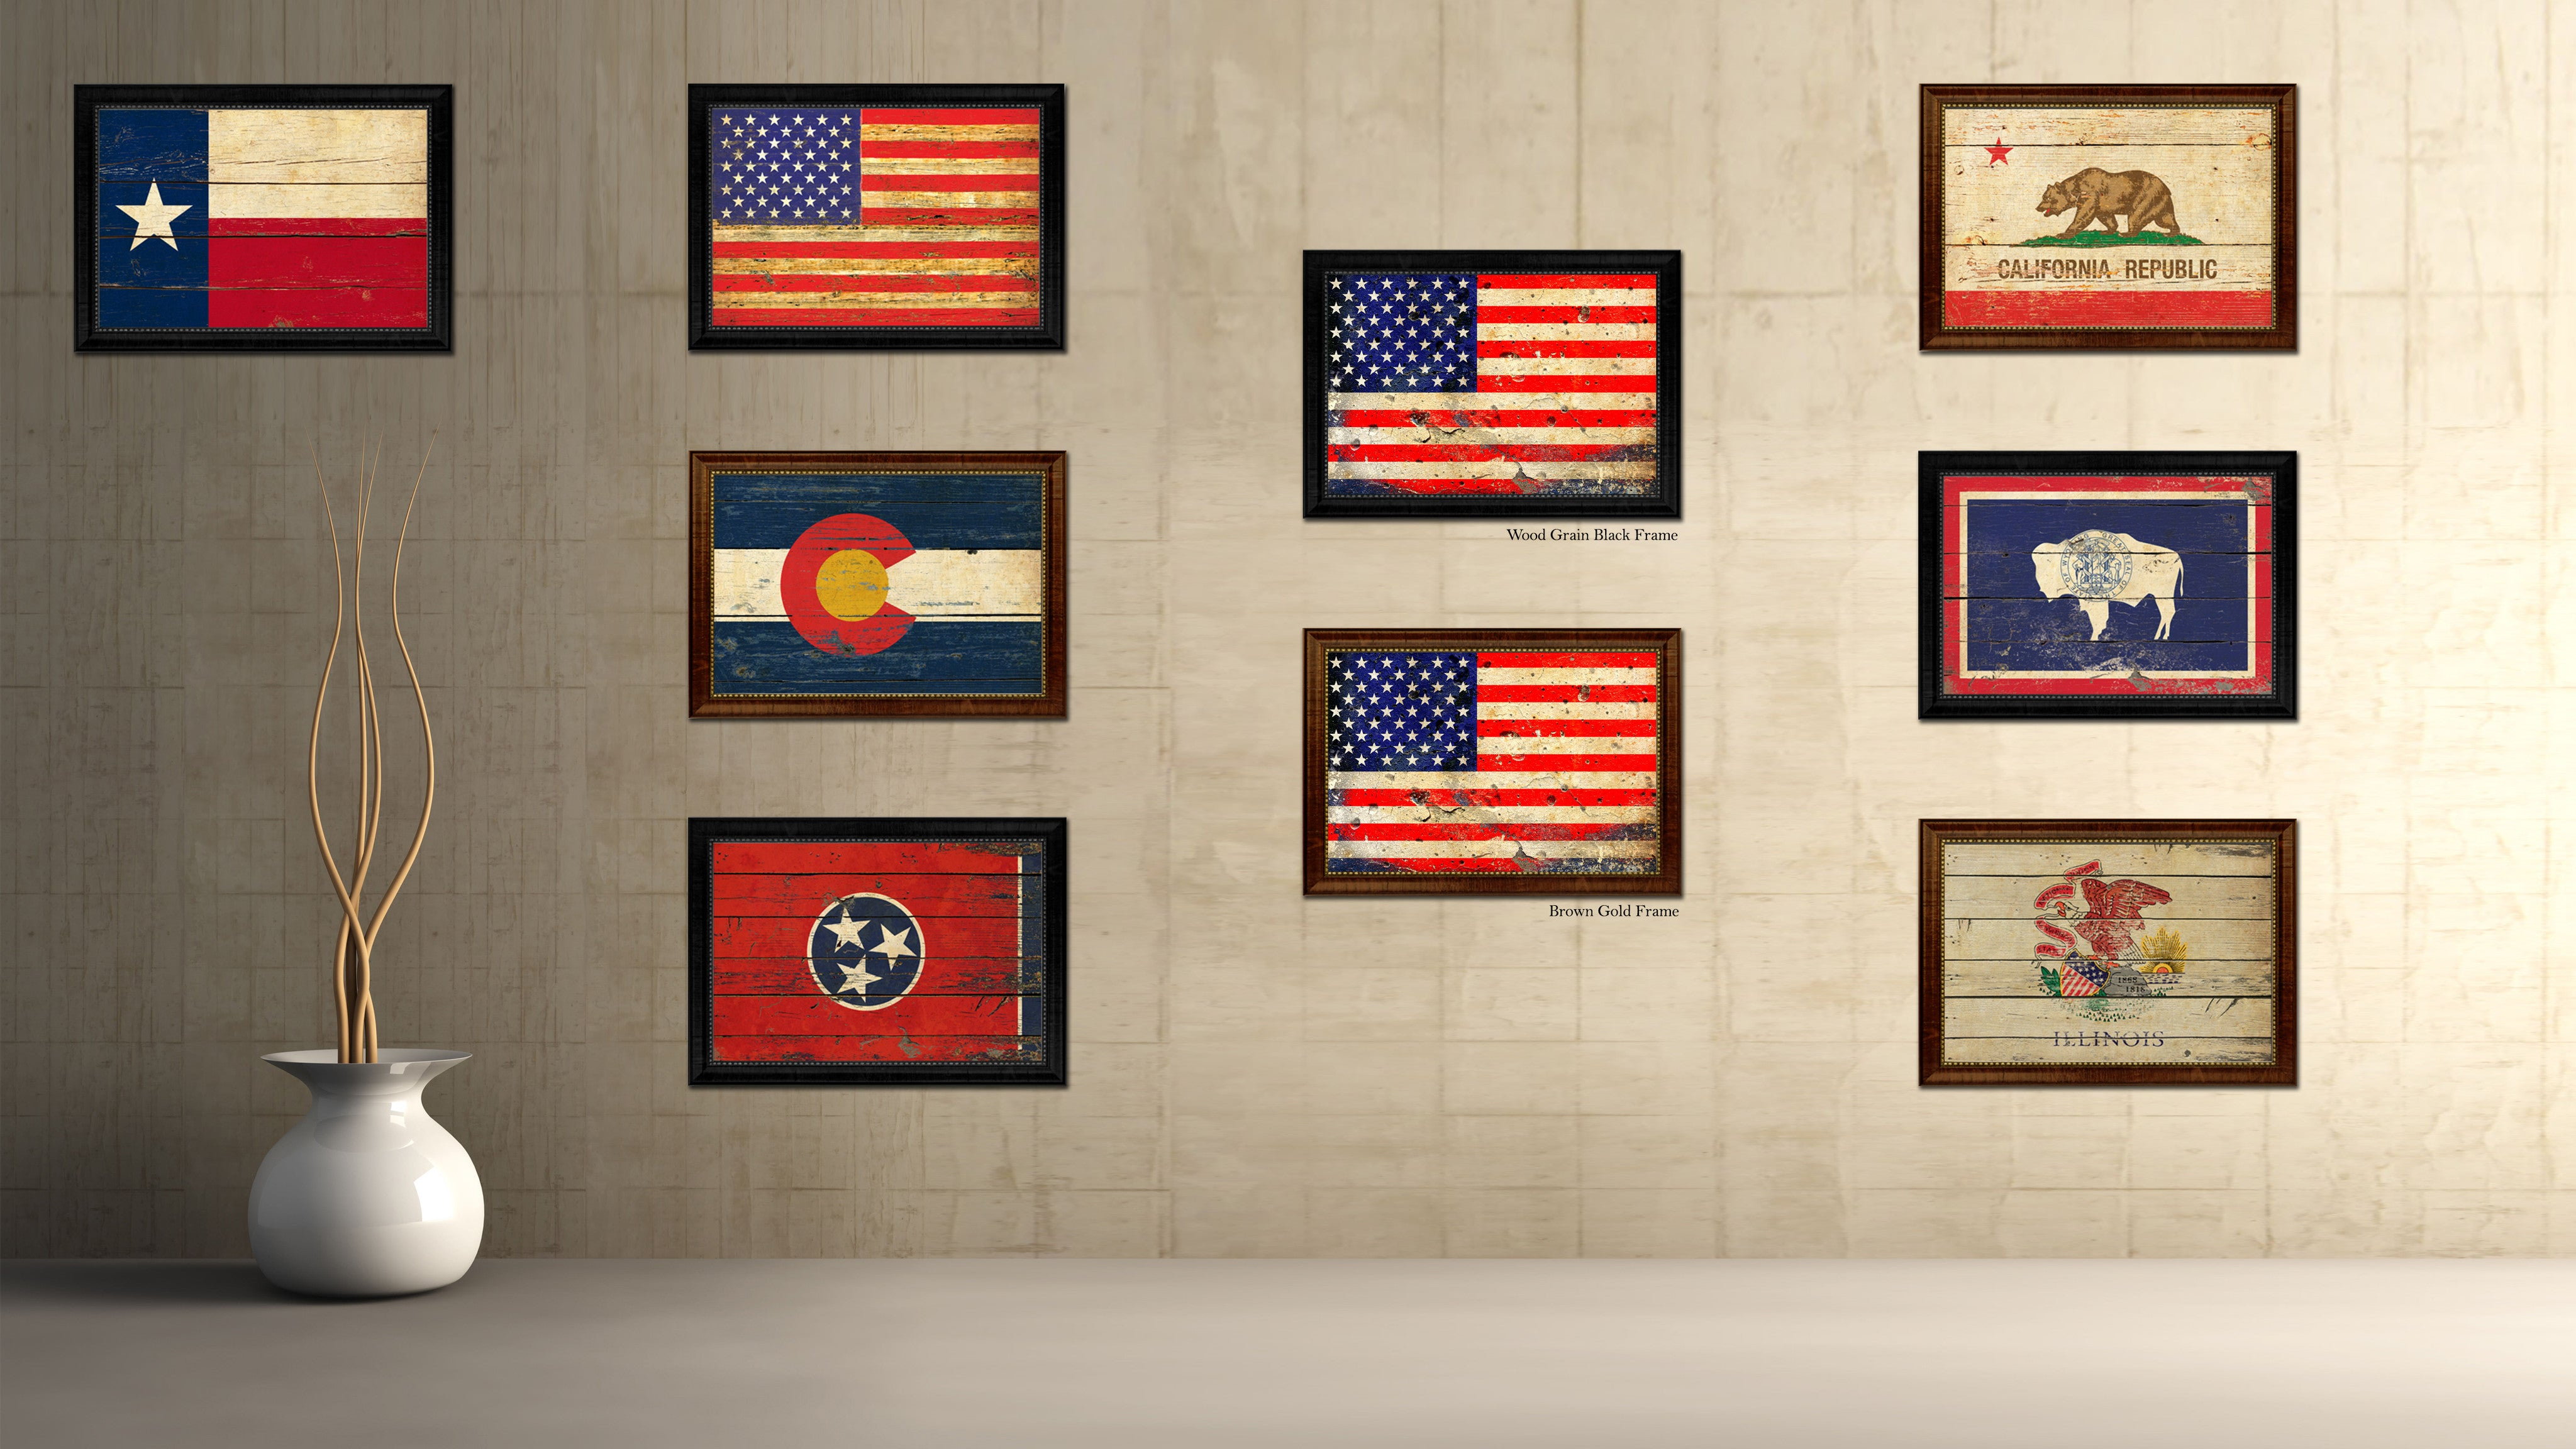 American Flag Vintage USA Canvas Print with Black Picture Frame Home Decor Man Cave Wall Art Collectible Decoration Artwork Gifts